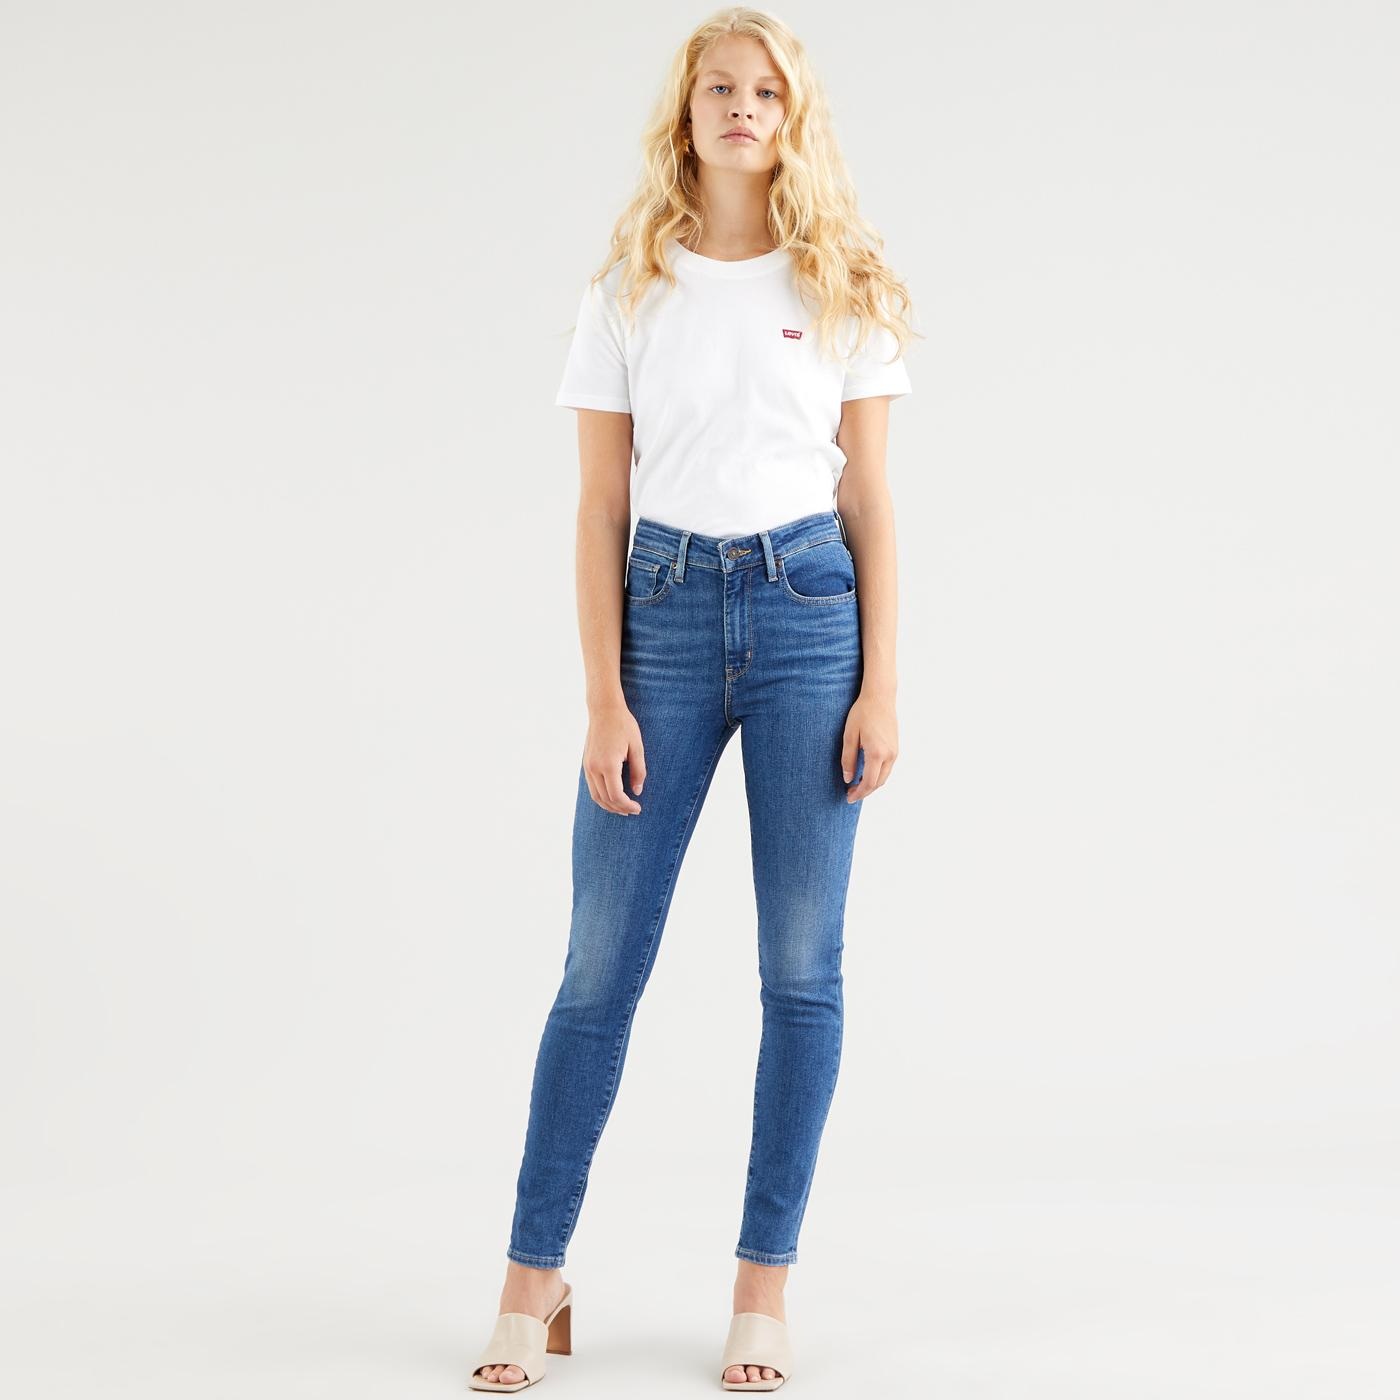 LEVI'S 721 High Rise Skinny Jeans (Good Afternoon)